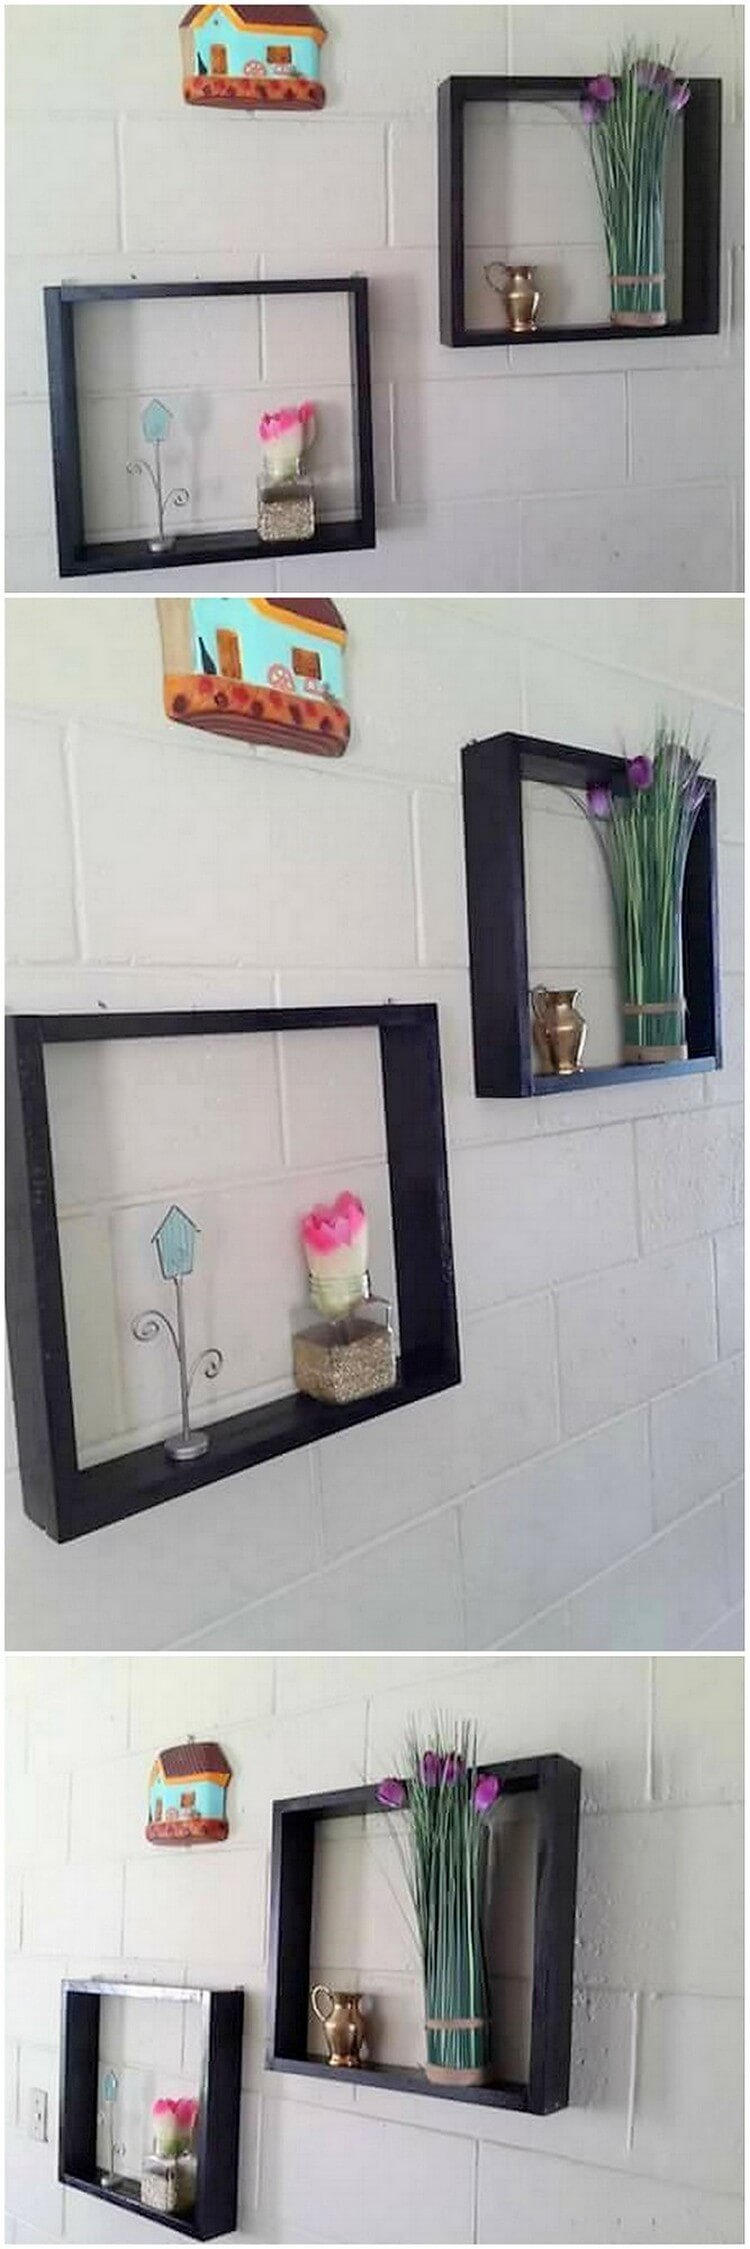 Decorative Pallet Wall Shelves